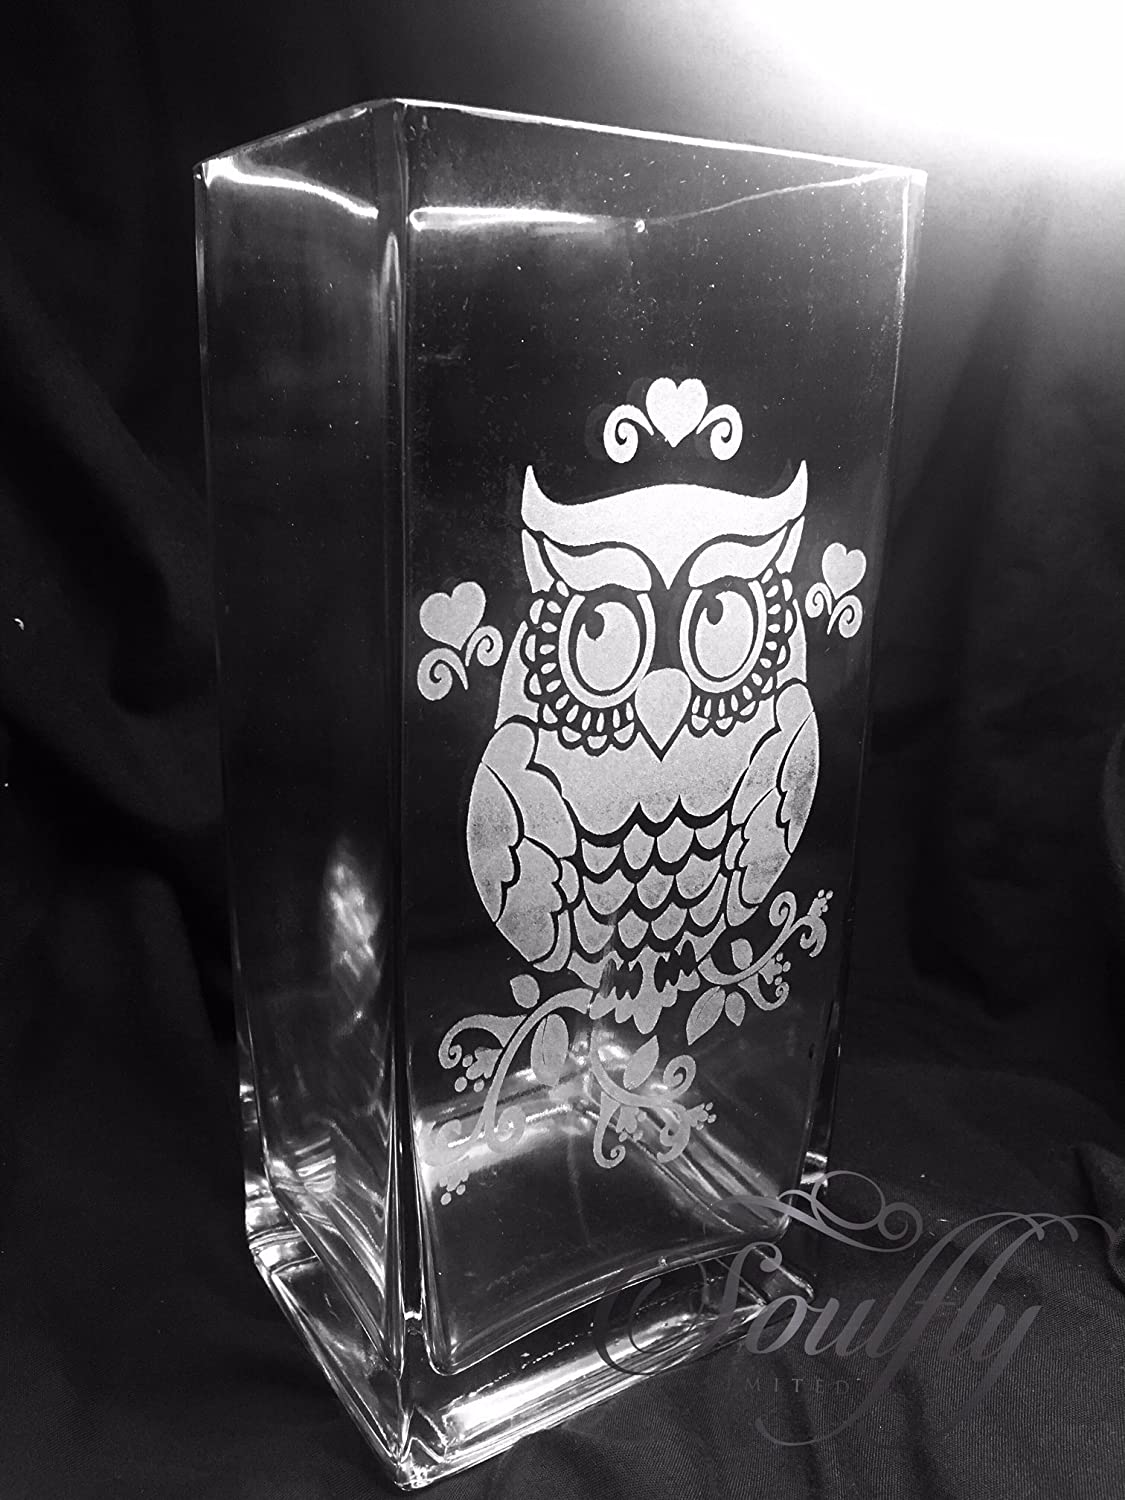 MOTHERS DAY OWL ENGRAVED GLASS TANK VASE - PERSONALISED FREE Engraved, etched glass personalised FREE gift, wedding, birthday, mother, father, anniversary, present, Mr & Mrs, engagement, day,